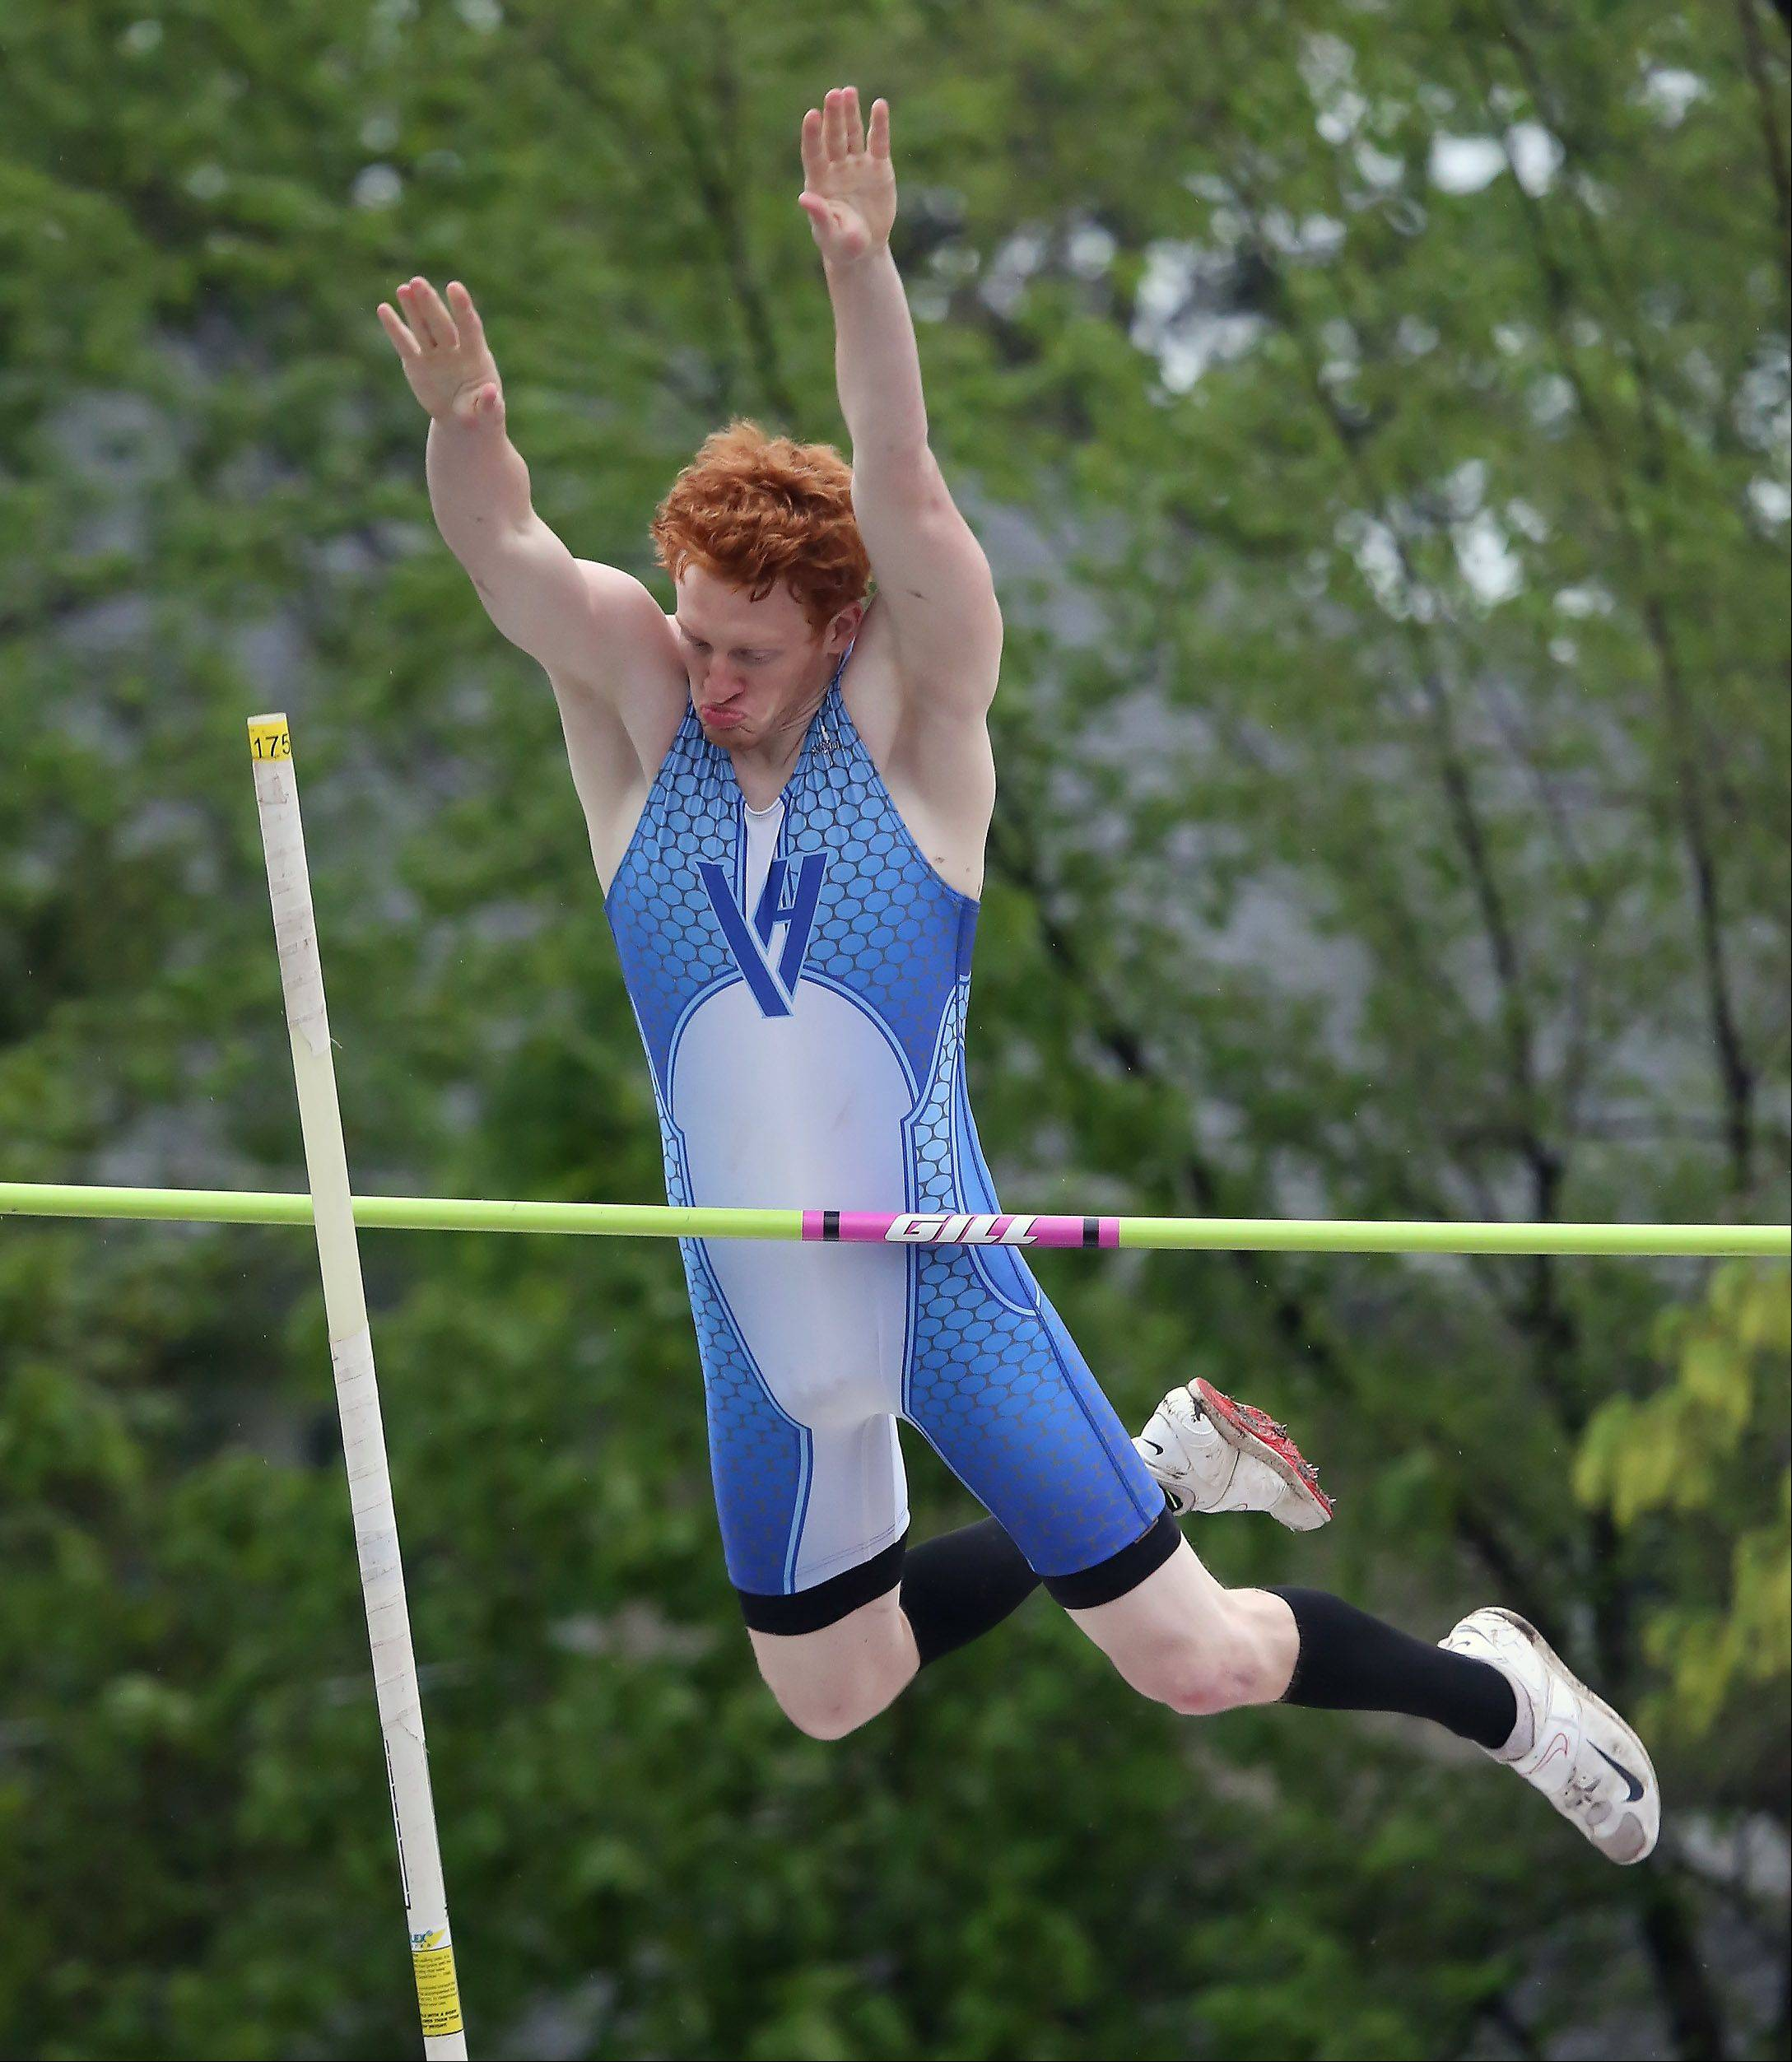 Vernon Hills pole vaulter Nick Foley clears the bar during the North Suburban Conference boys track meet Thursday at Libertyville High School.